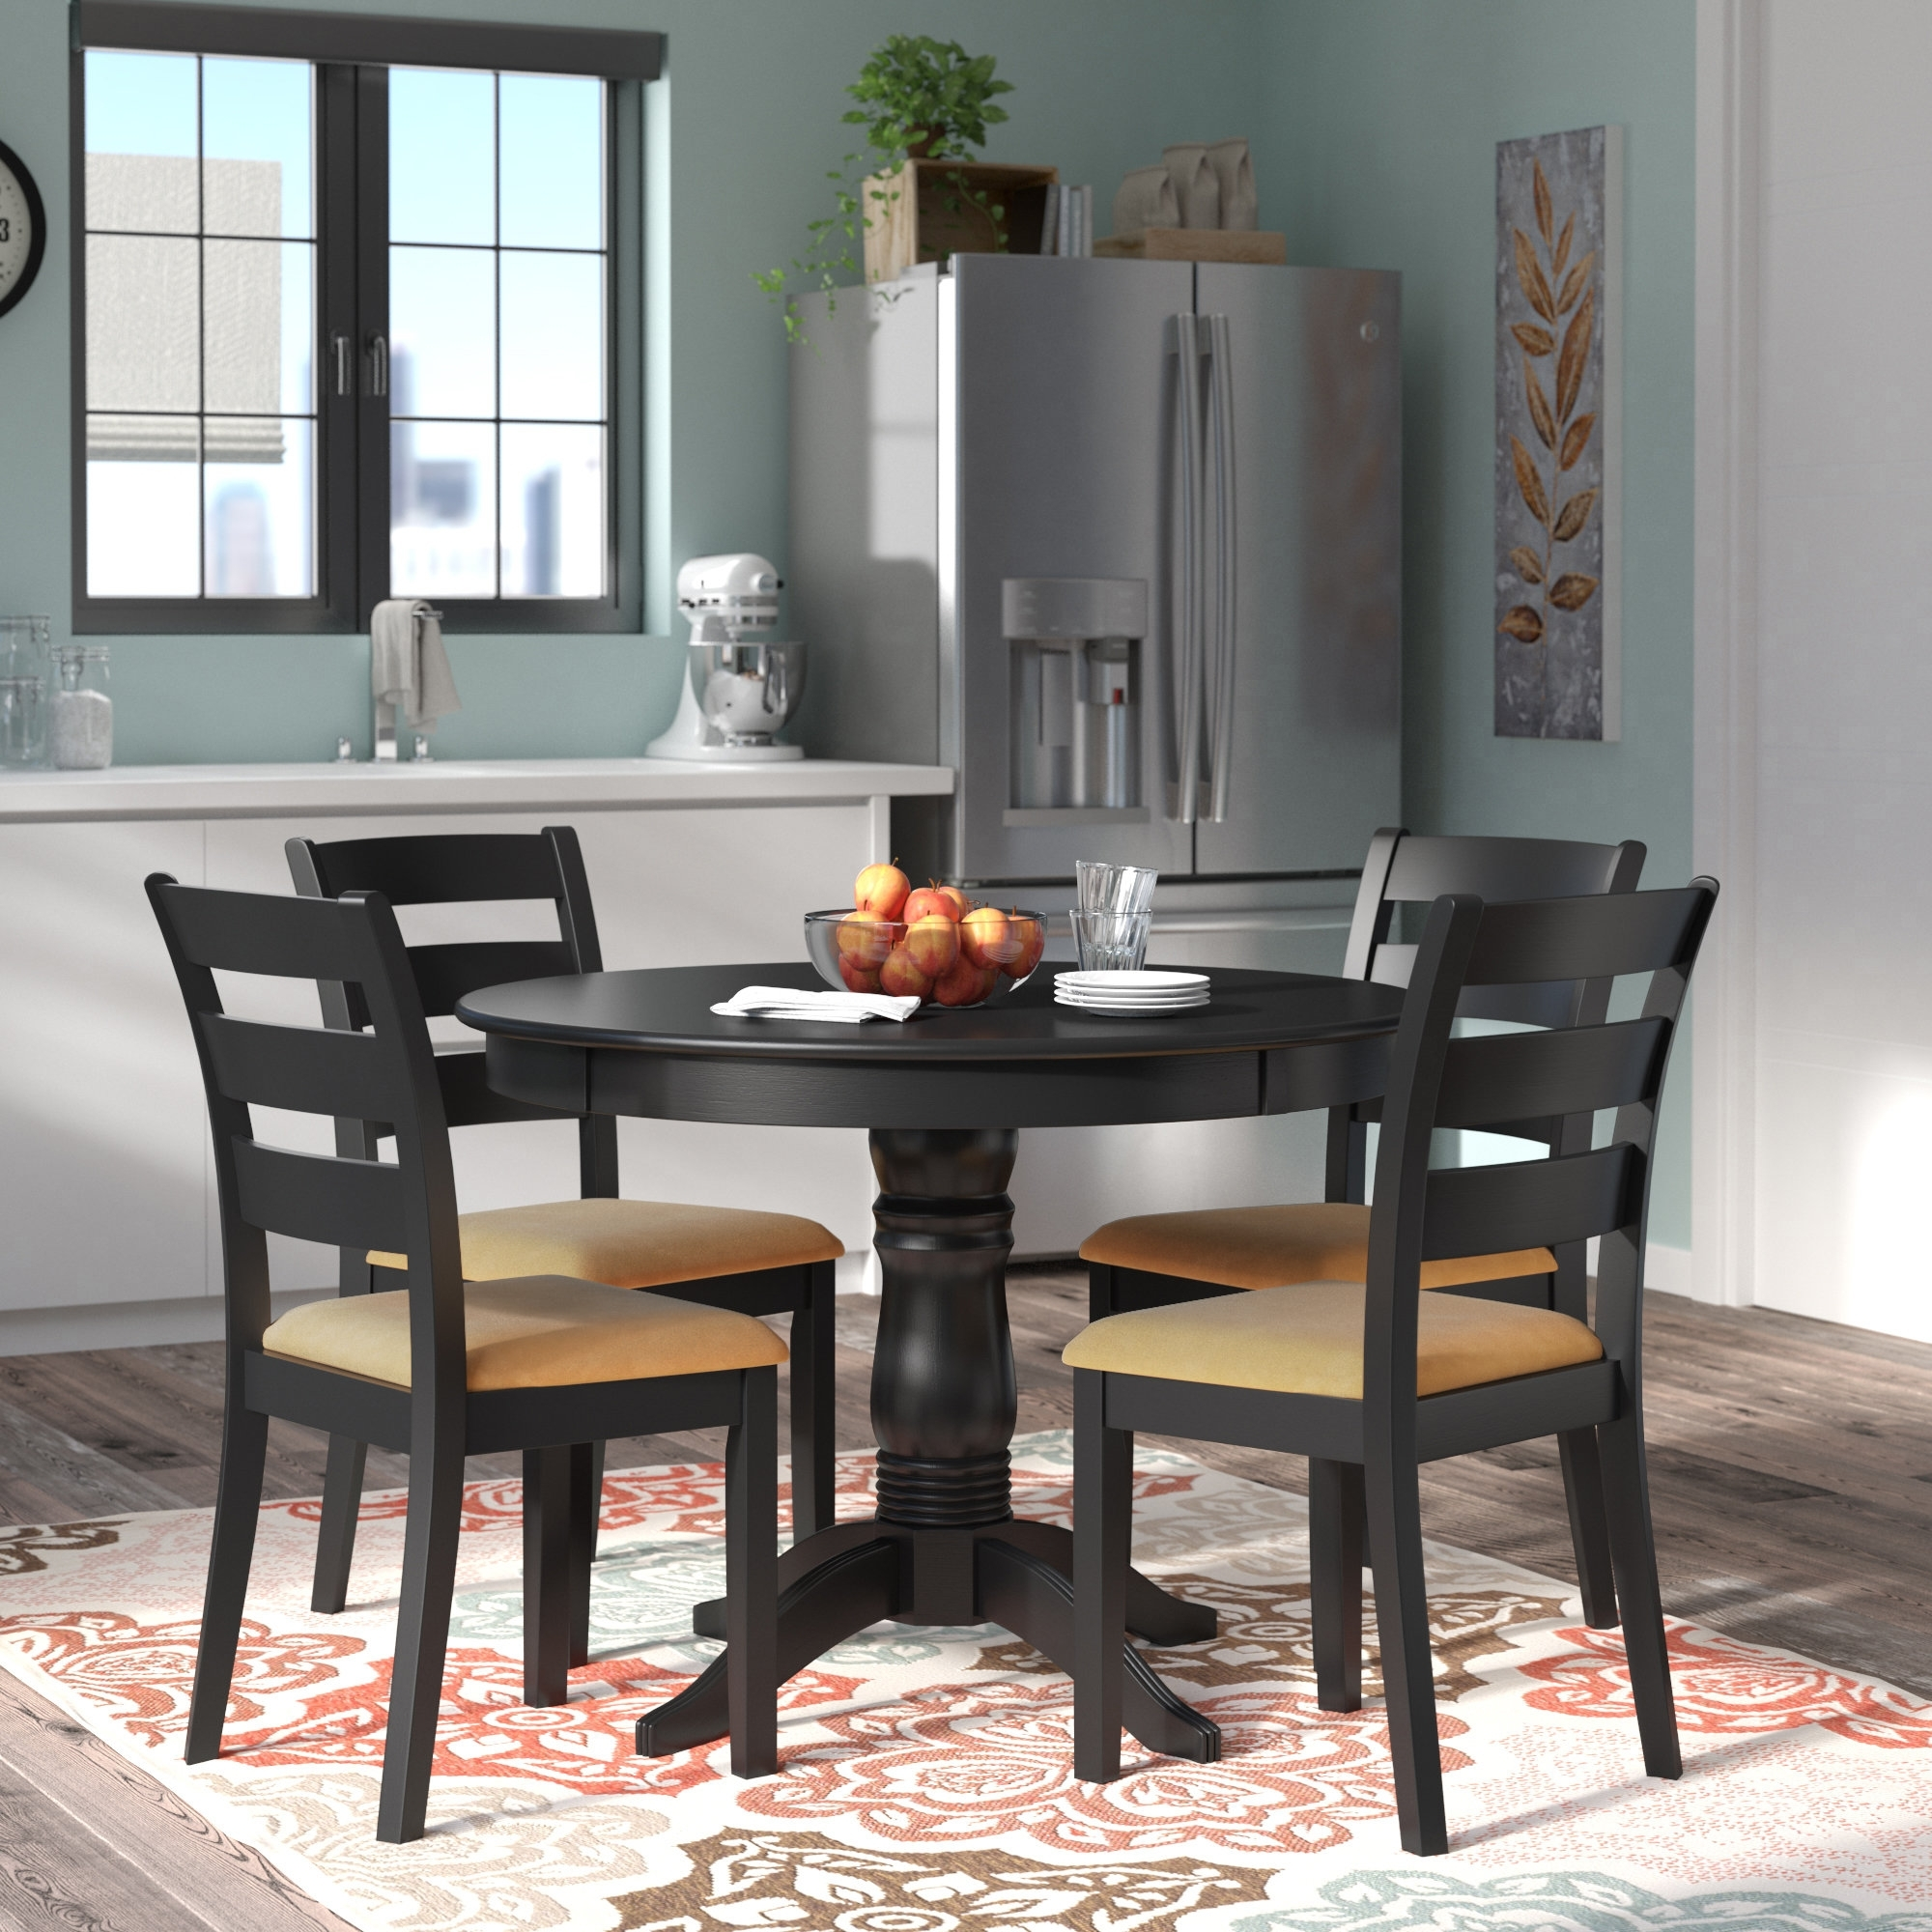 Andover Mills Oneill Modern 5 Piece Ladder Back Dining Set & Reviews In Best And Newest Candice Ii 5 Piece Round Dining Sets (Image 1 of 20)